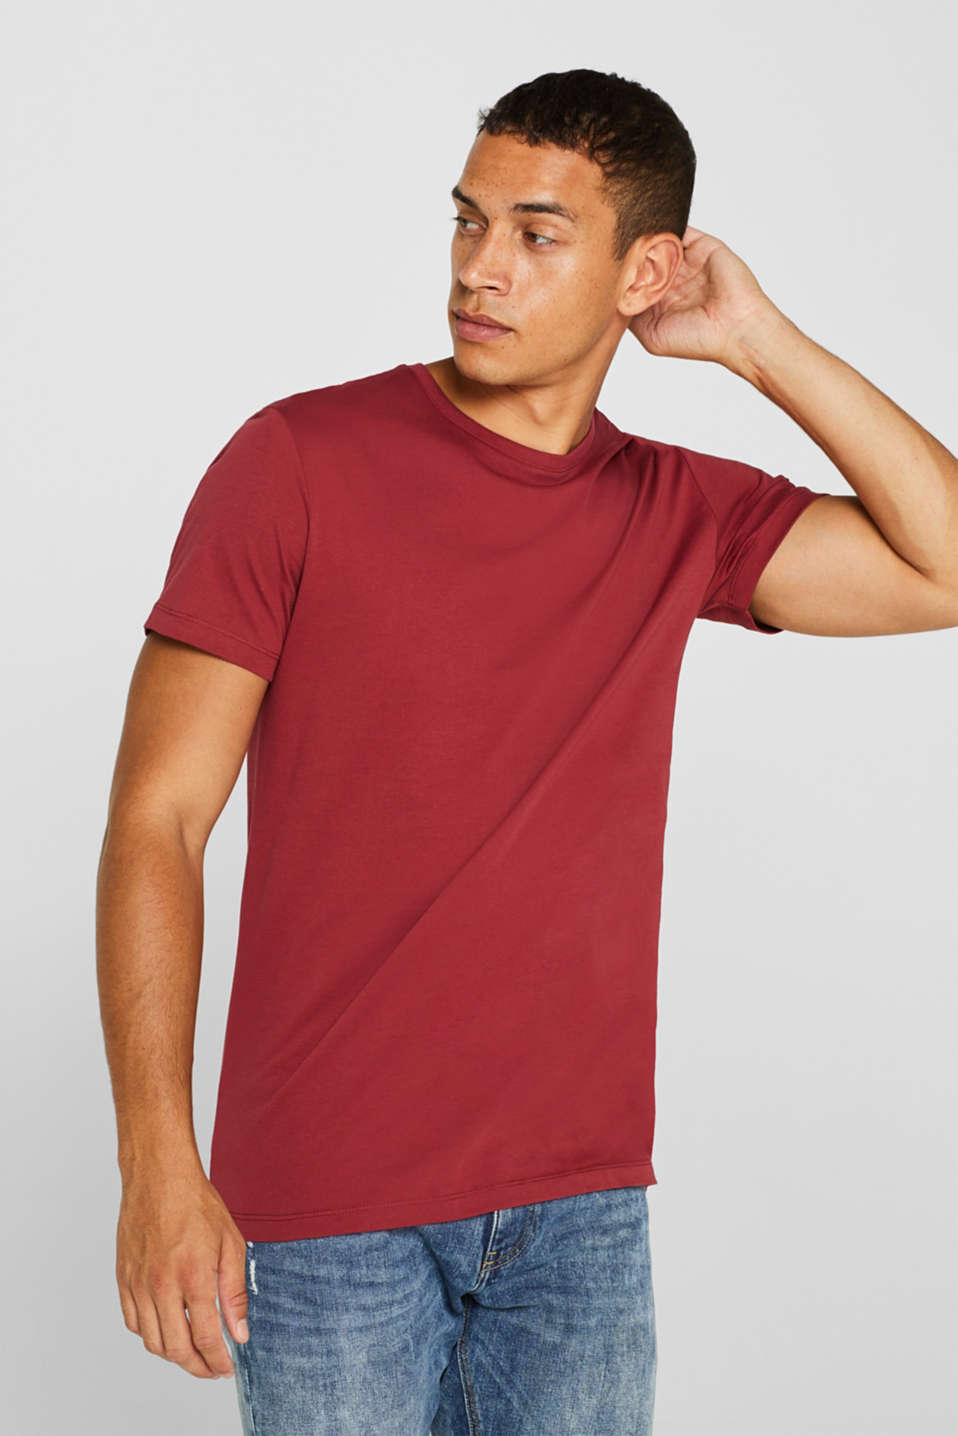 Jersey T-shirt in 100% cotton, BORDEAUX RED 2, detail image number 0